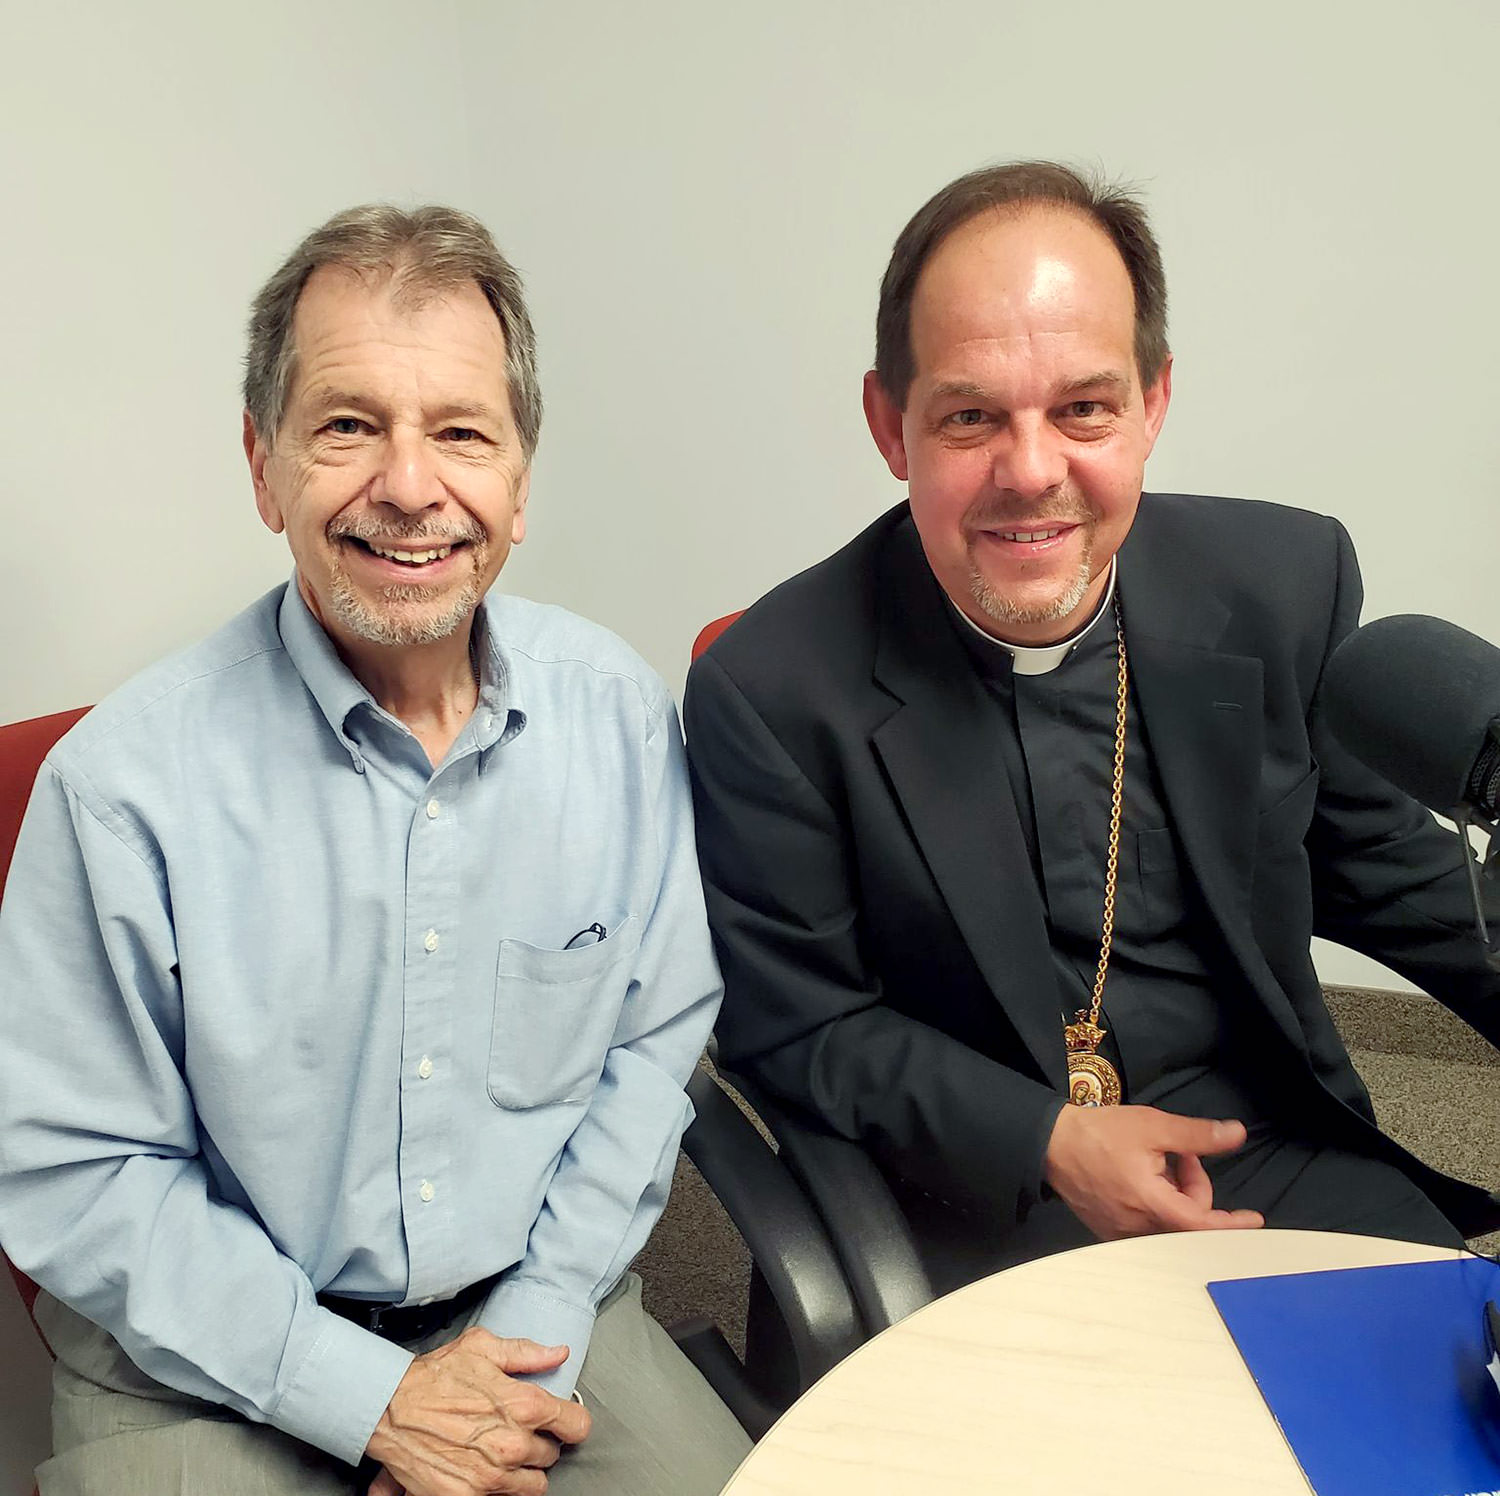 Table Talk with Bishop Danylo at AM 1260 The Rock